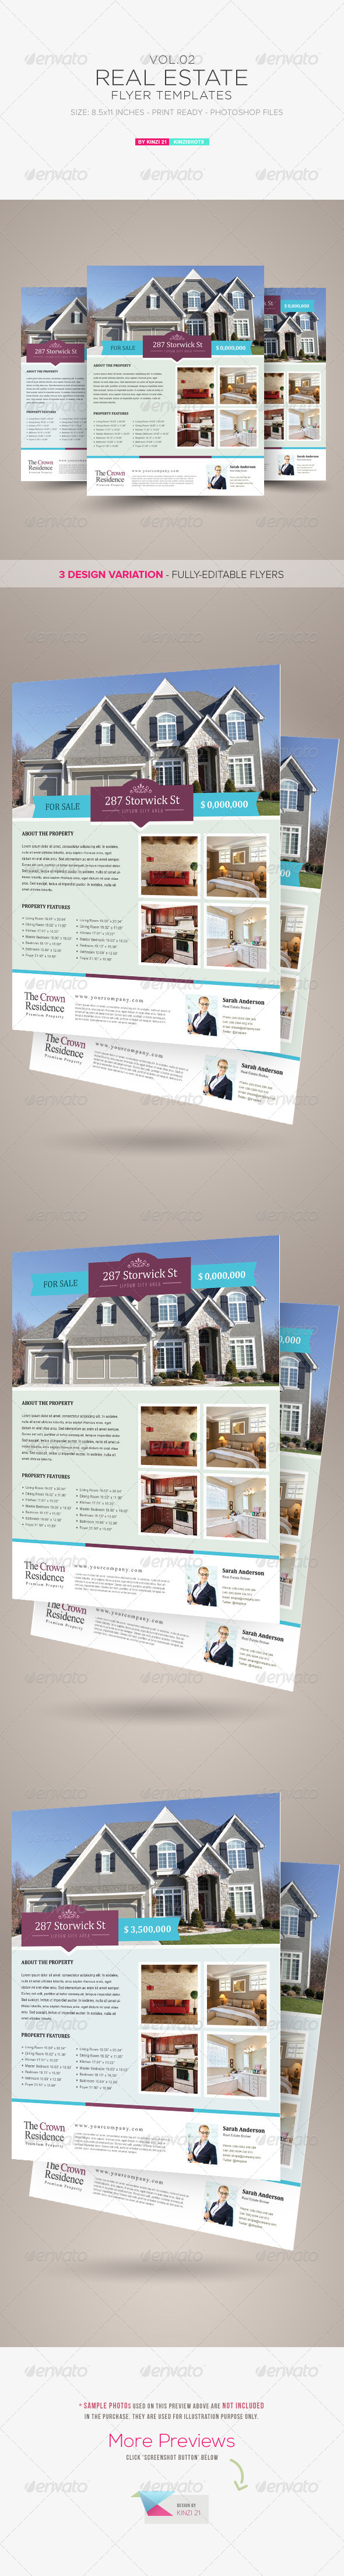 GraphicRiver Real Estate Flyer Template Vol.02 7227738